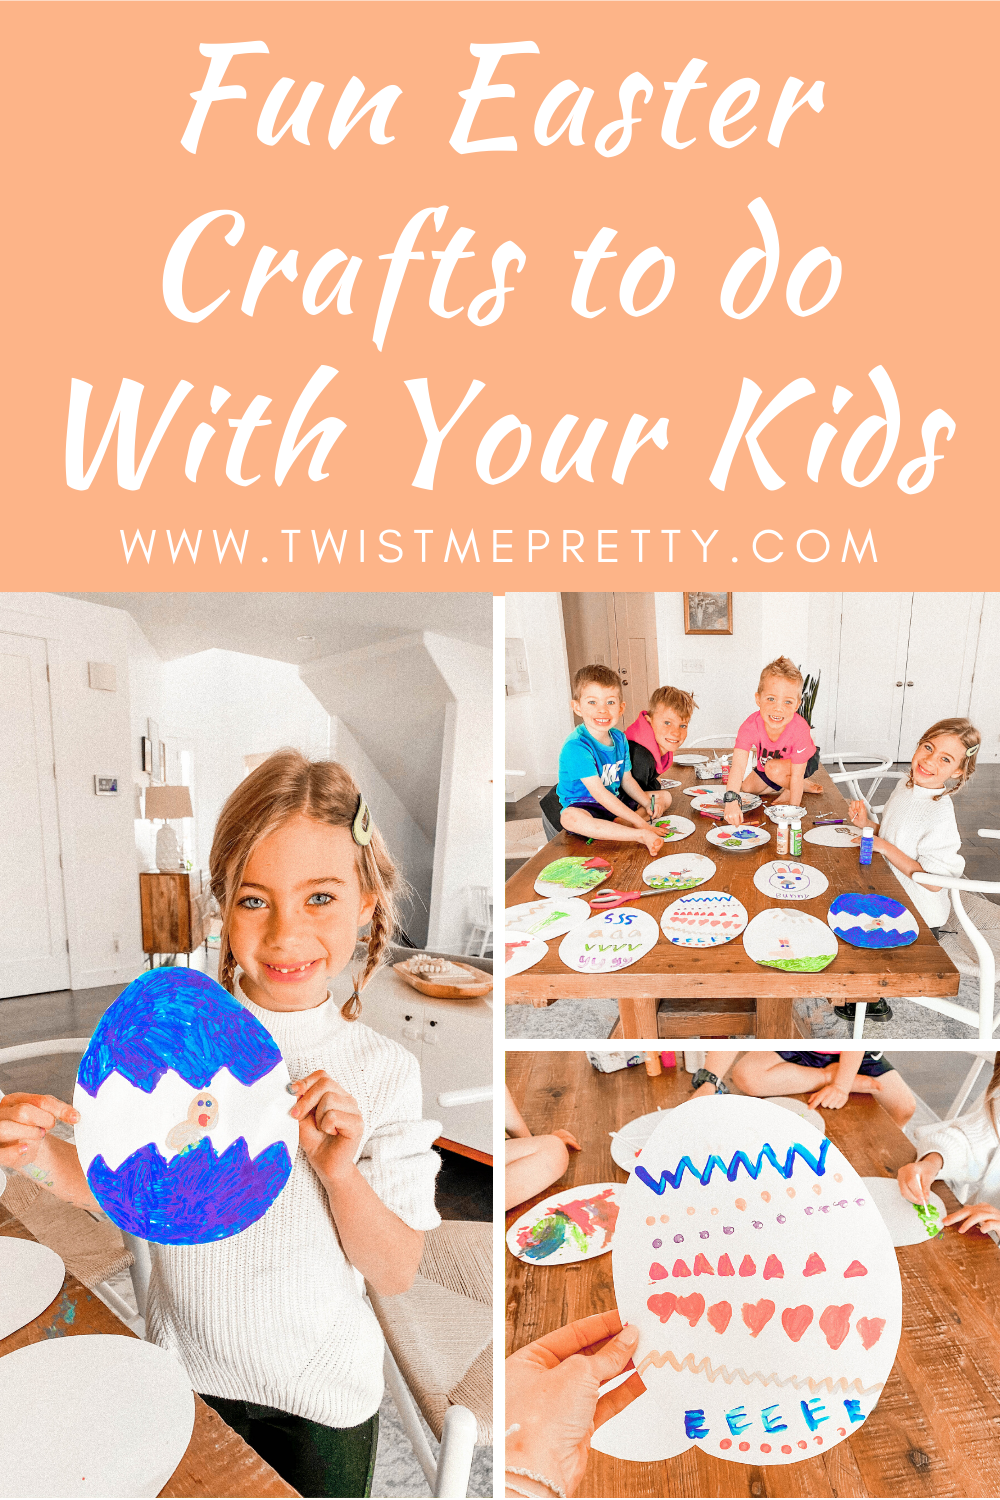 Fun Easter Crafts to Do with Your Kids www.TwistMePretty.com